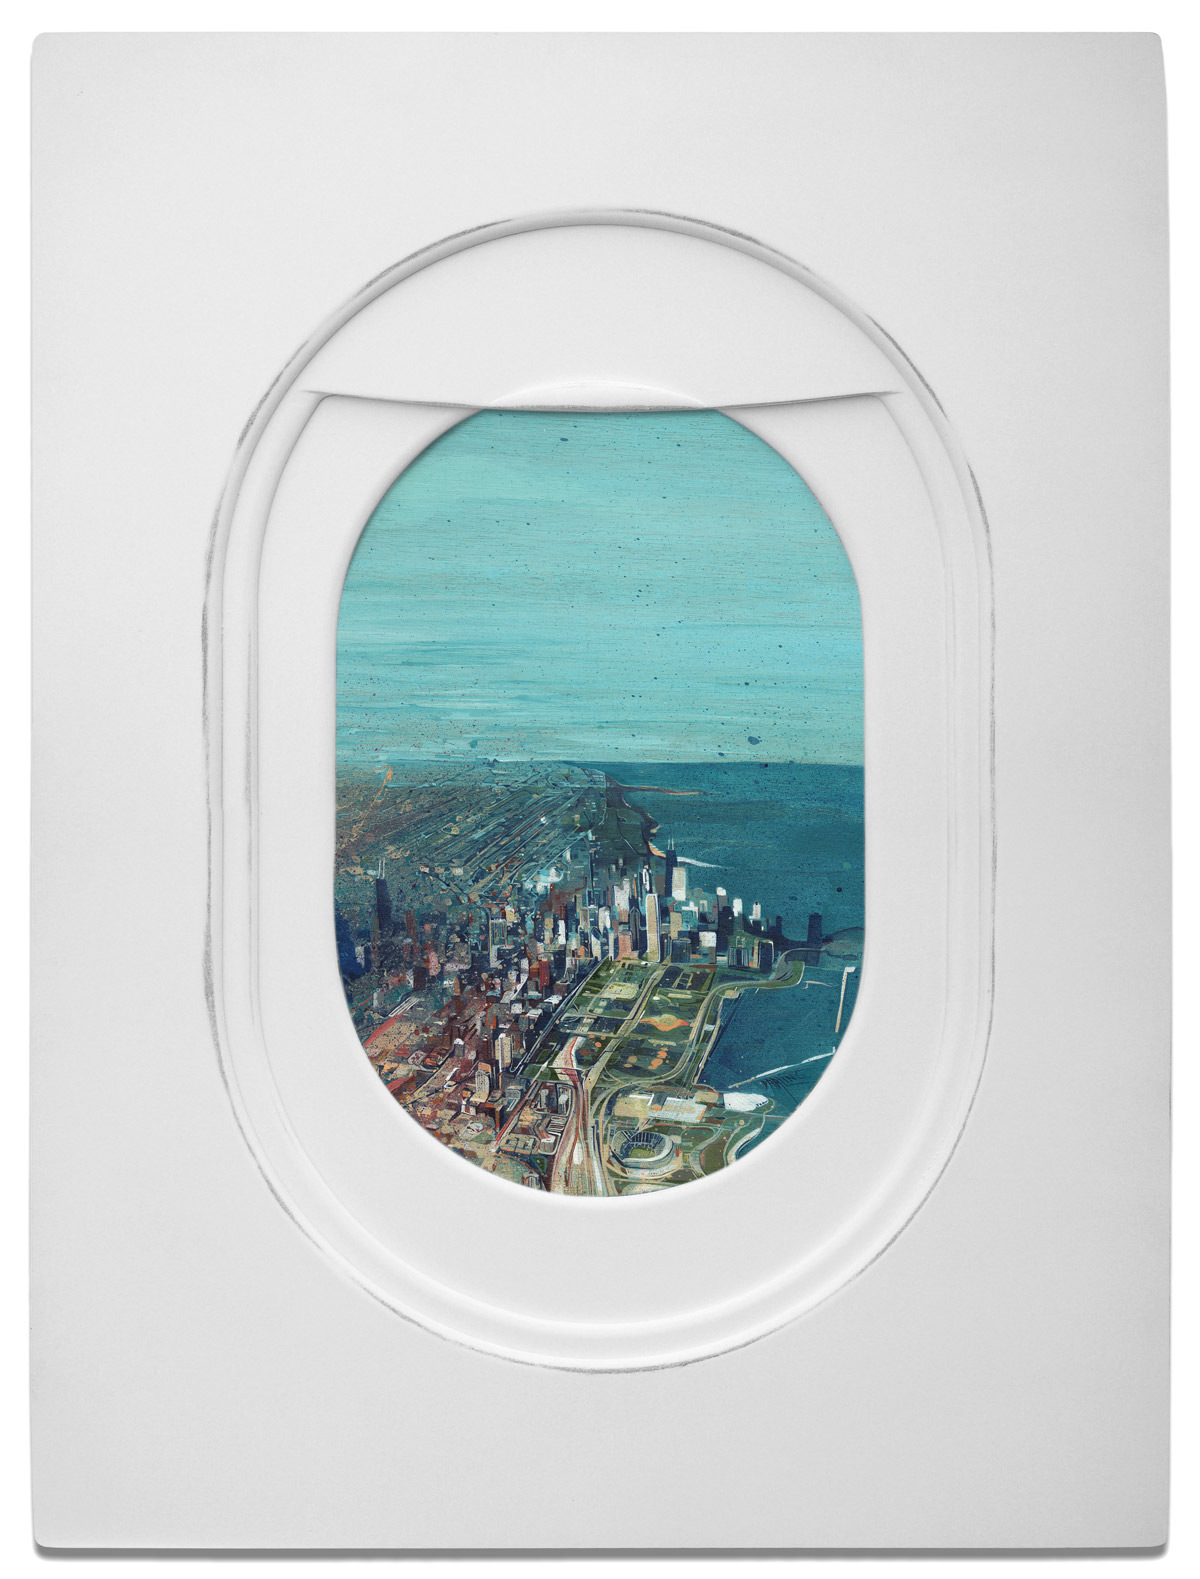 Peek Out of These Painted Airplane Windows to Spot Diverse Landscapes | Colossal